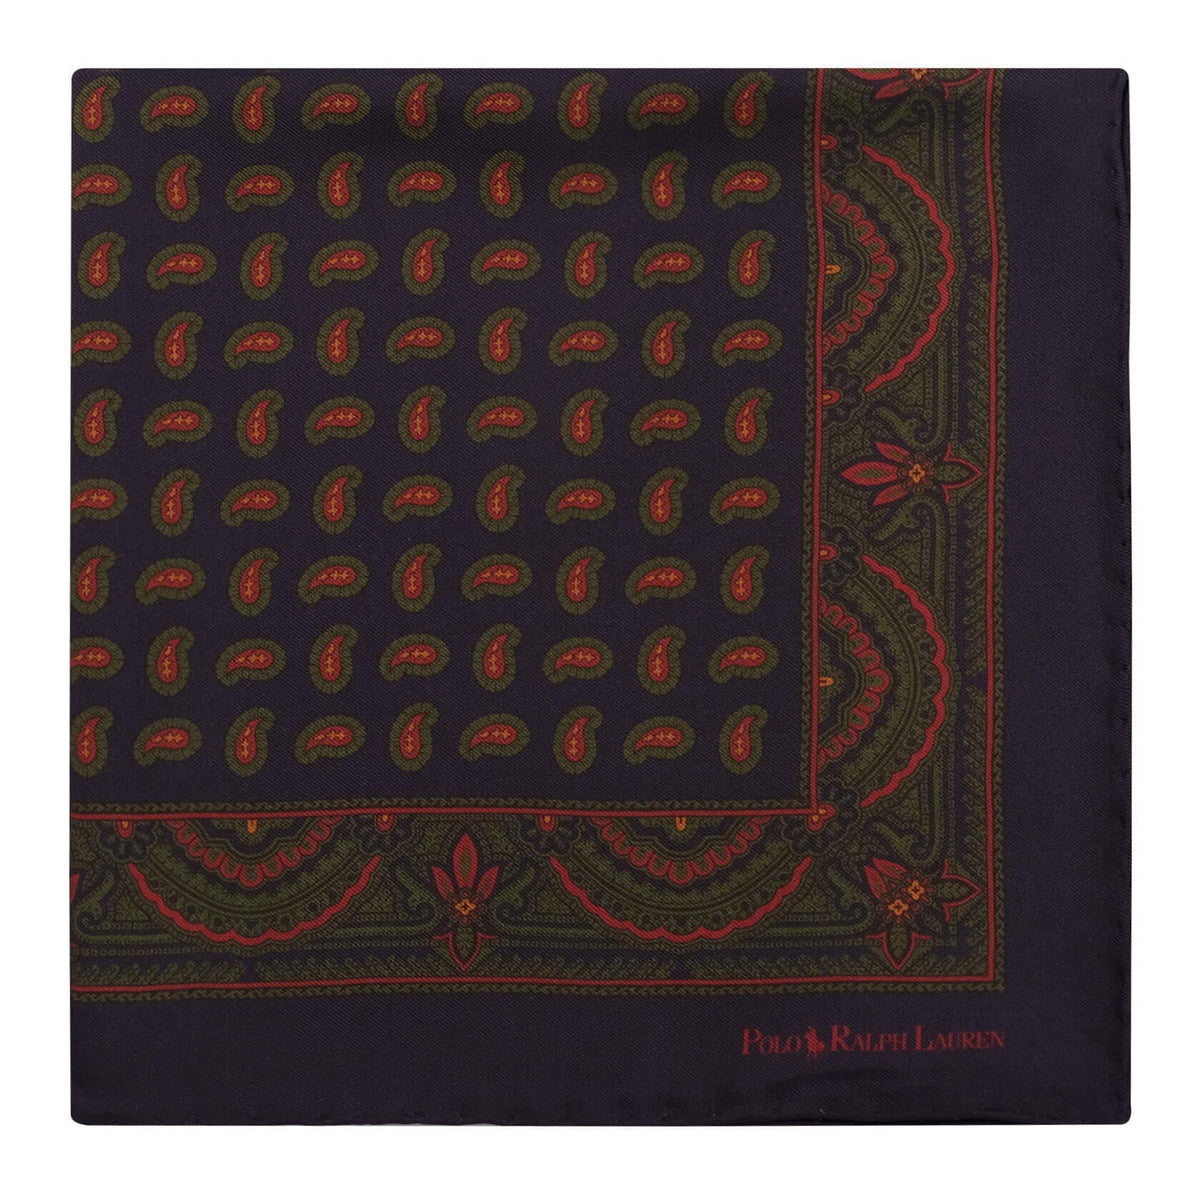 Ralph Lauren Paisley Pattern Foulard Pocket Square - Navy